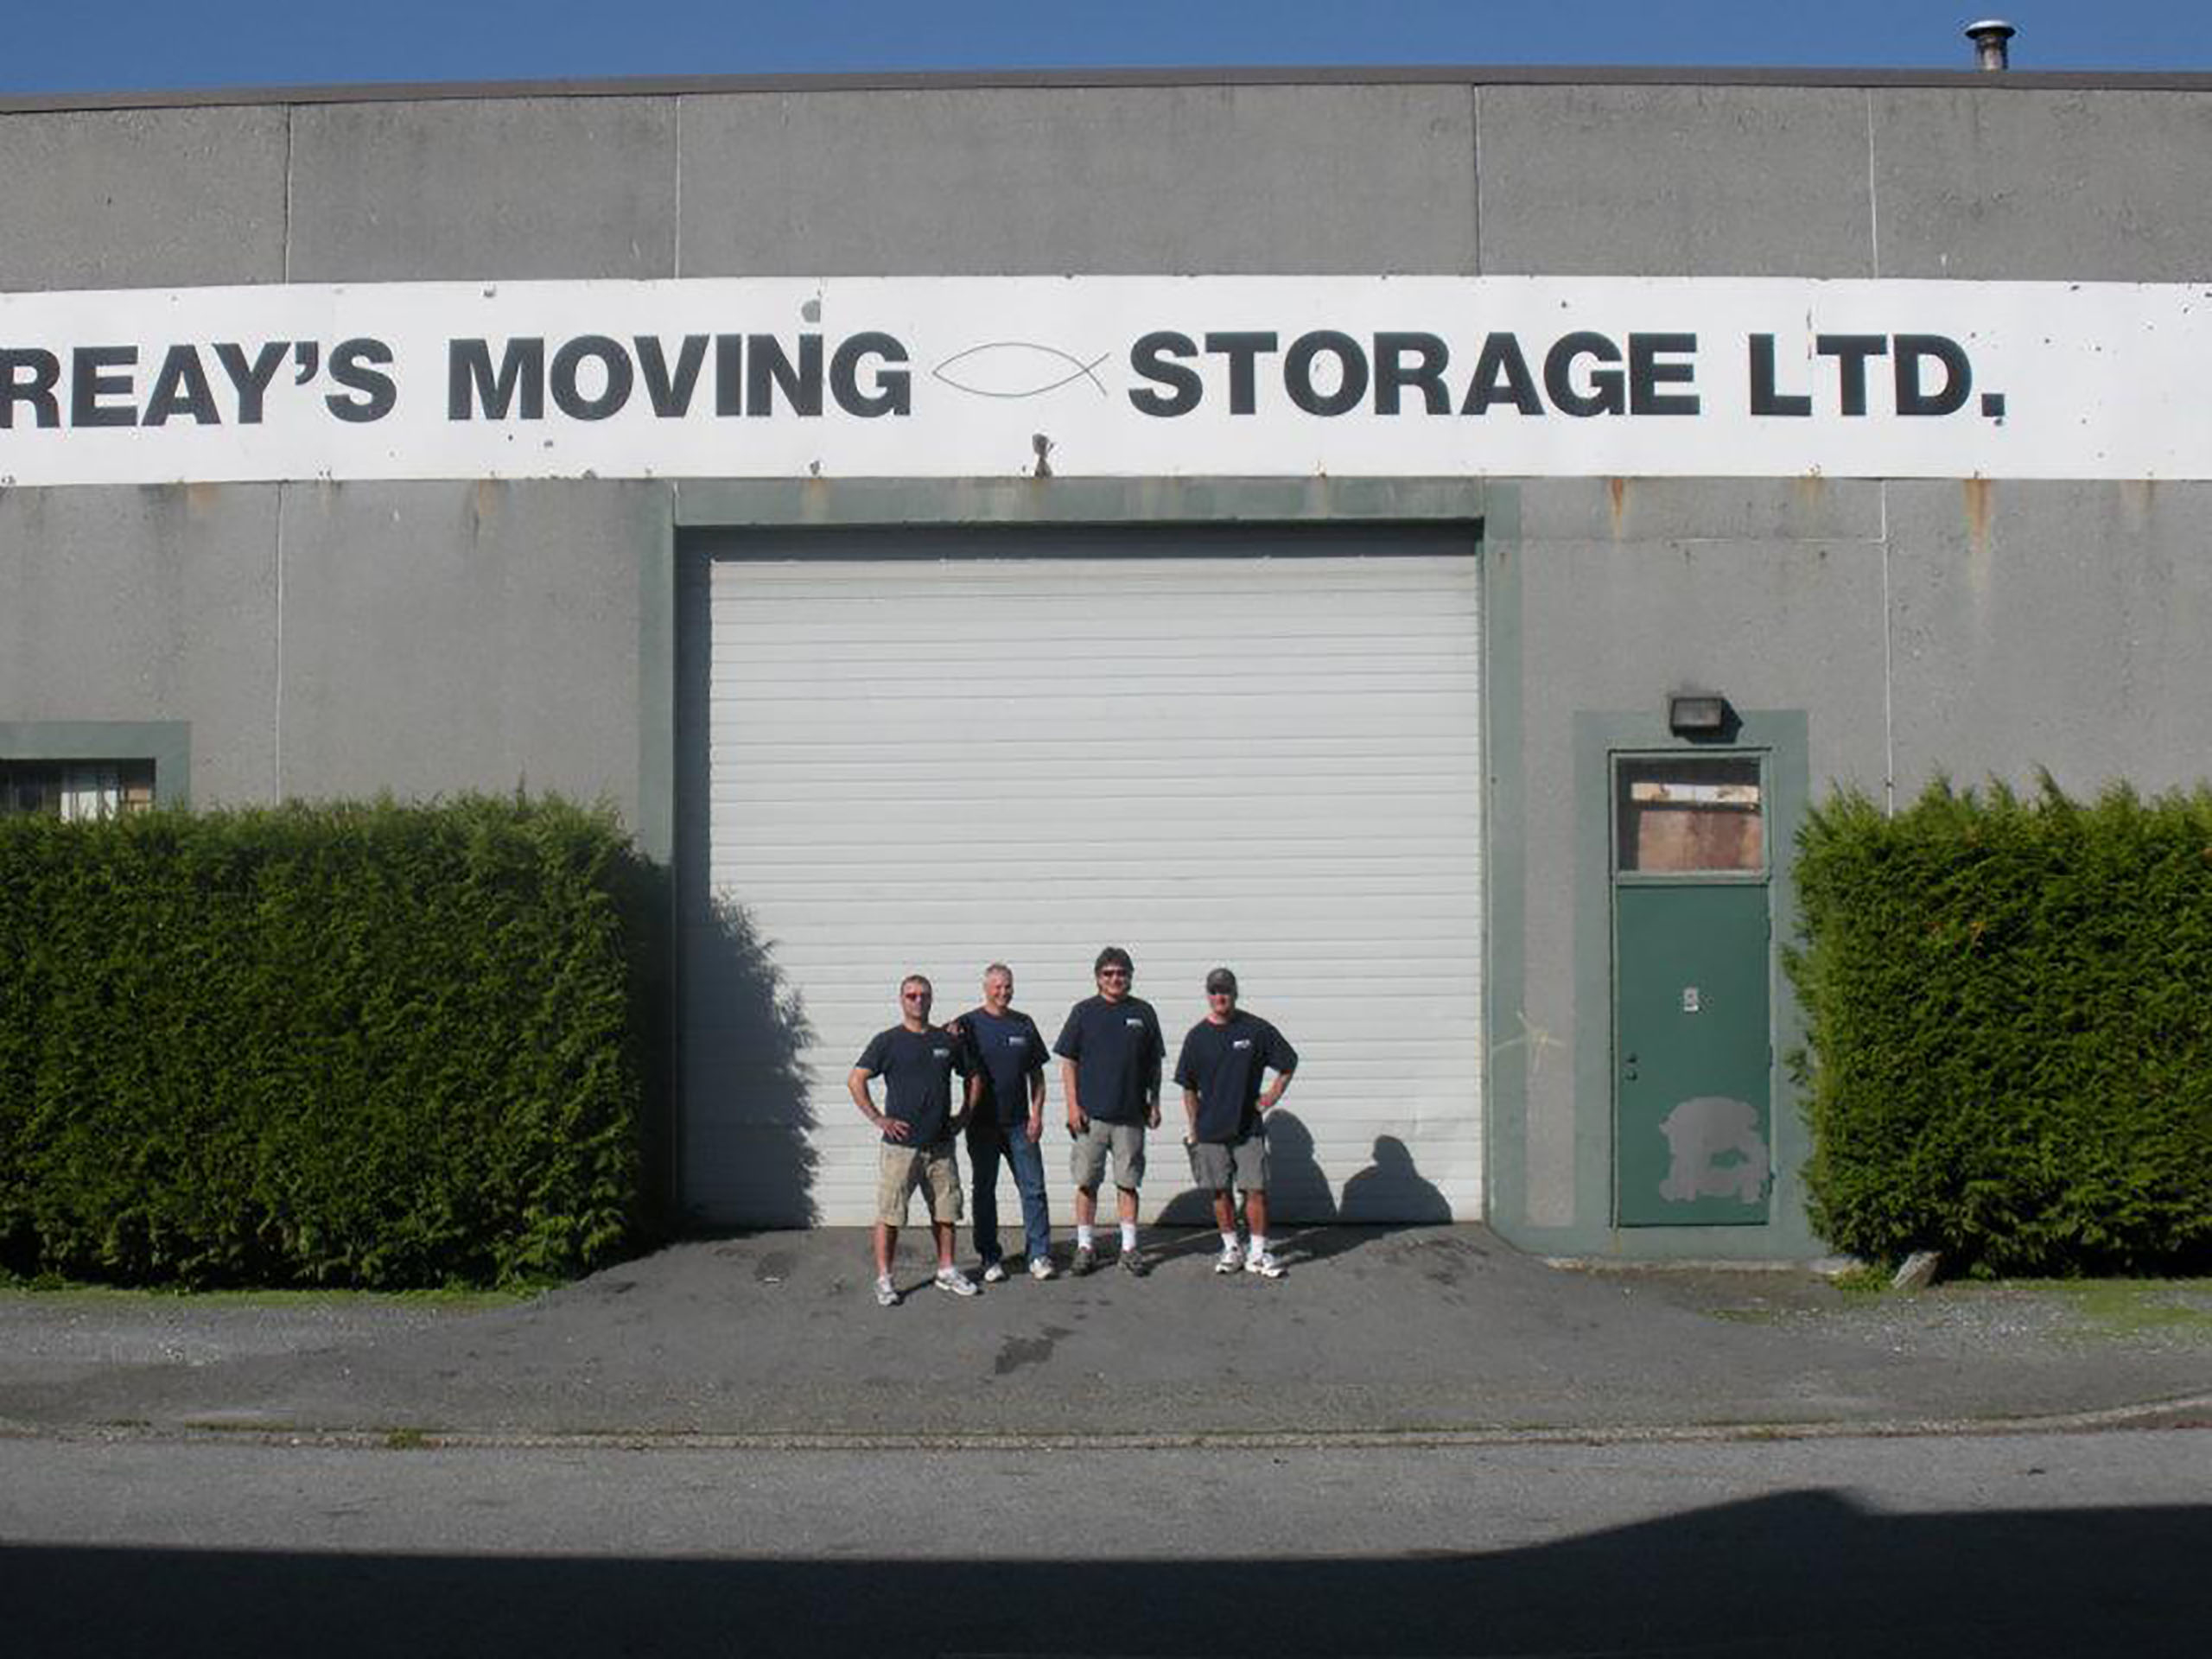 Reay's Moving & Storage in Vancouver: We offer prompt and professional service for your commercial and residential moving needs. Choose us and take the stress out of your next decision.